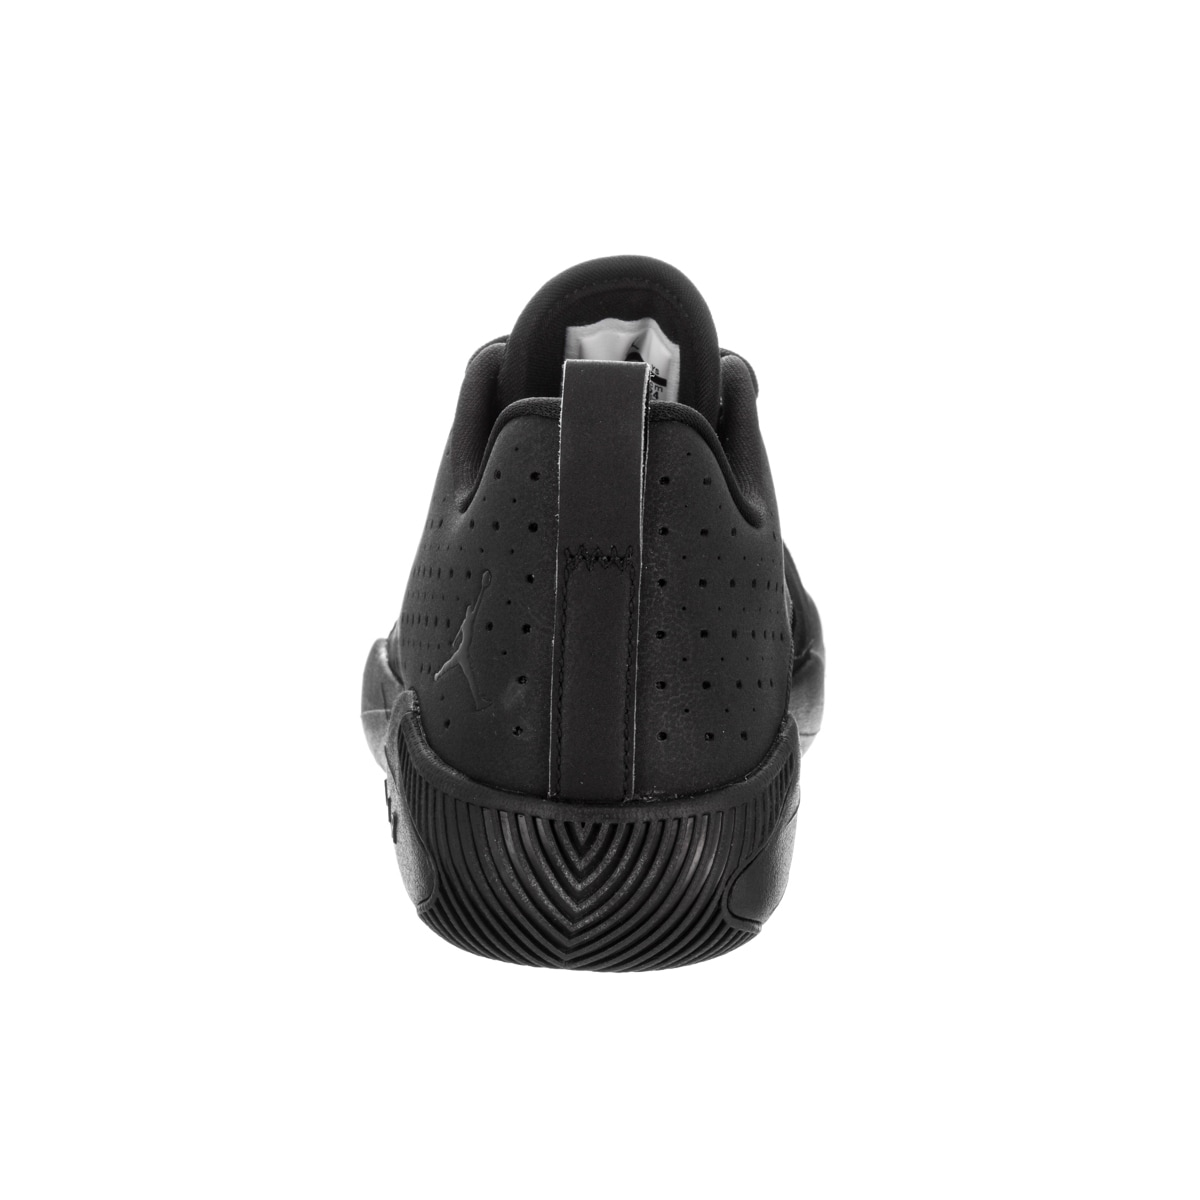 Shop Nike Boys  Jordan 23 Breakout Bg Black Leather Basketball Shoe - Free  Shipping Today - Overstock - 14163263 5ef2c476c